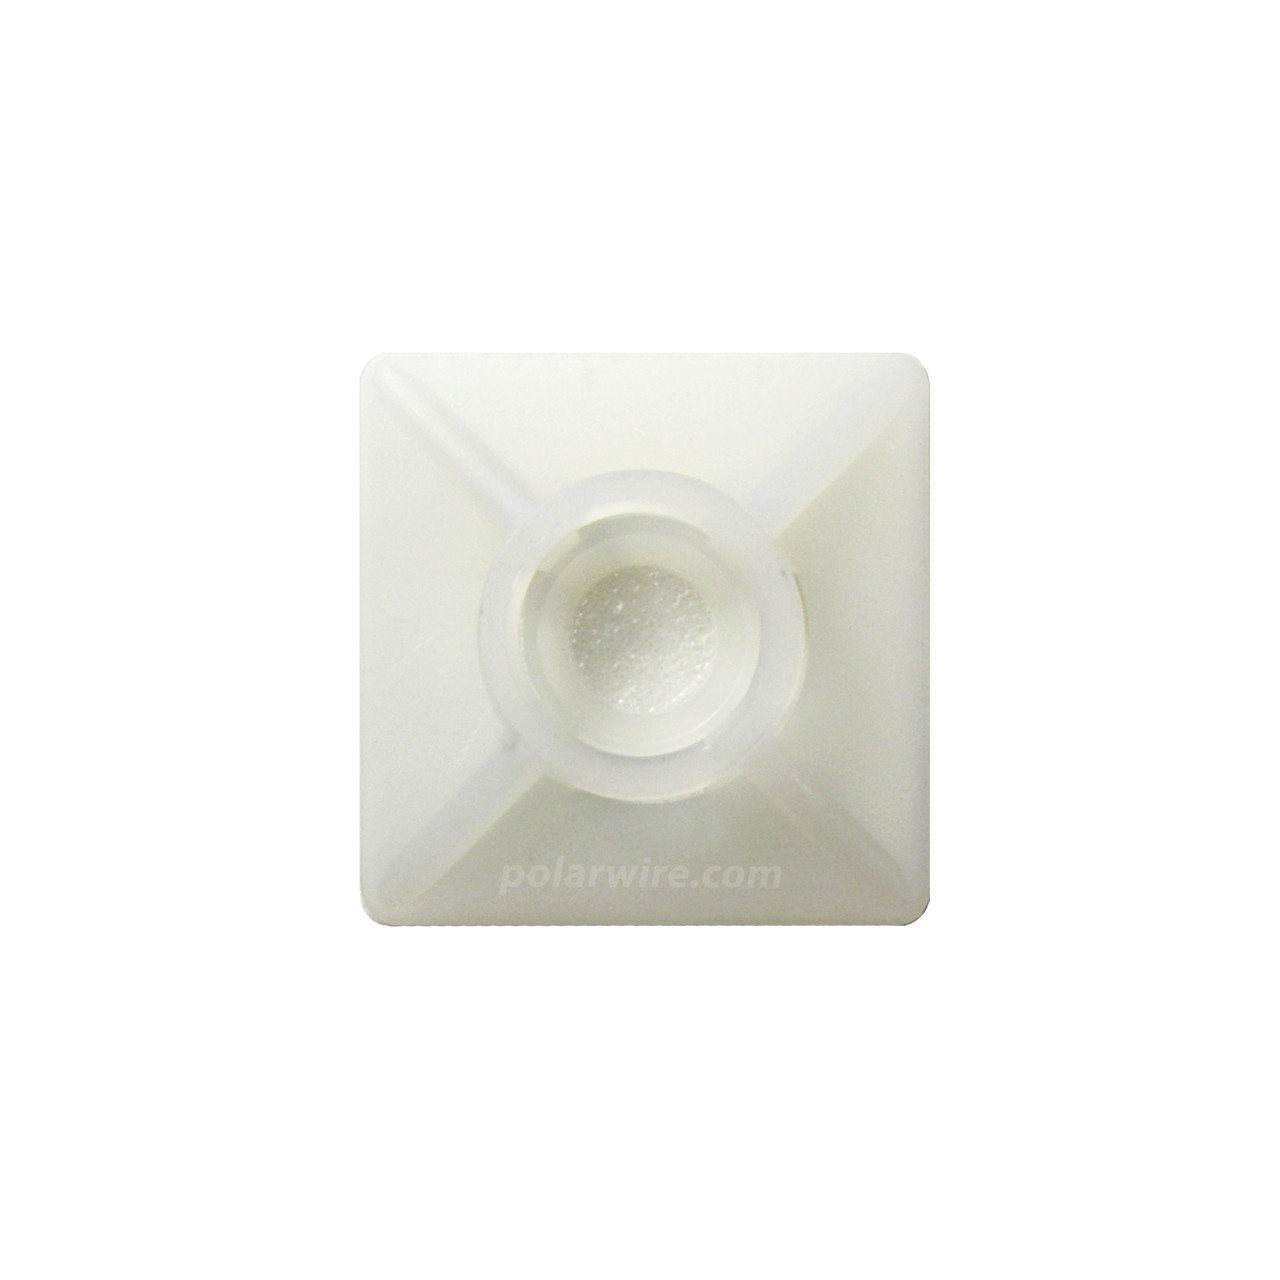 adhesive zip tie mount with screw hole, natural 6.6 nylon, 3/4 inch